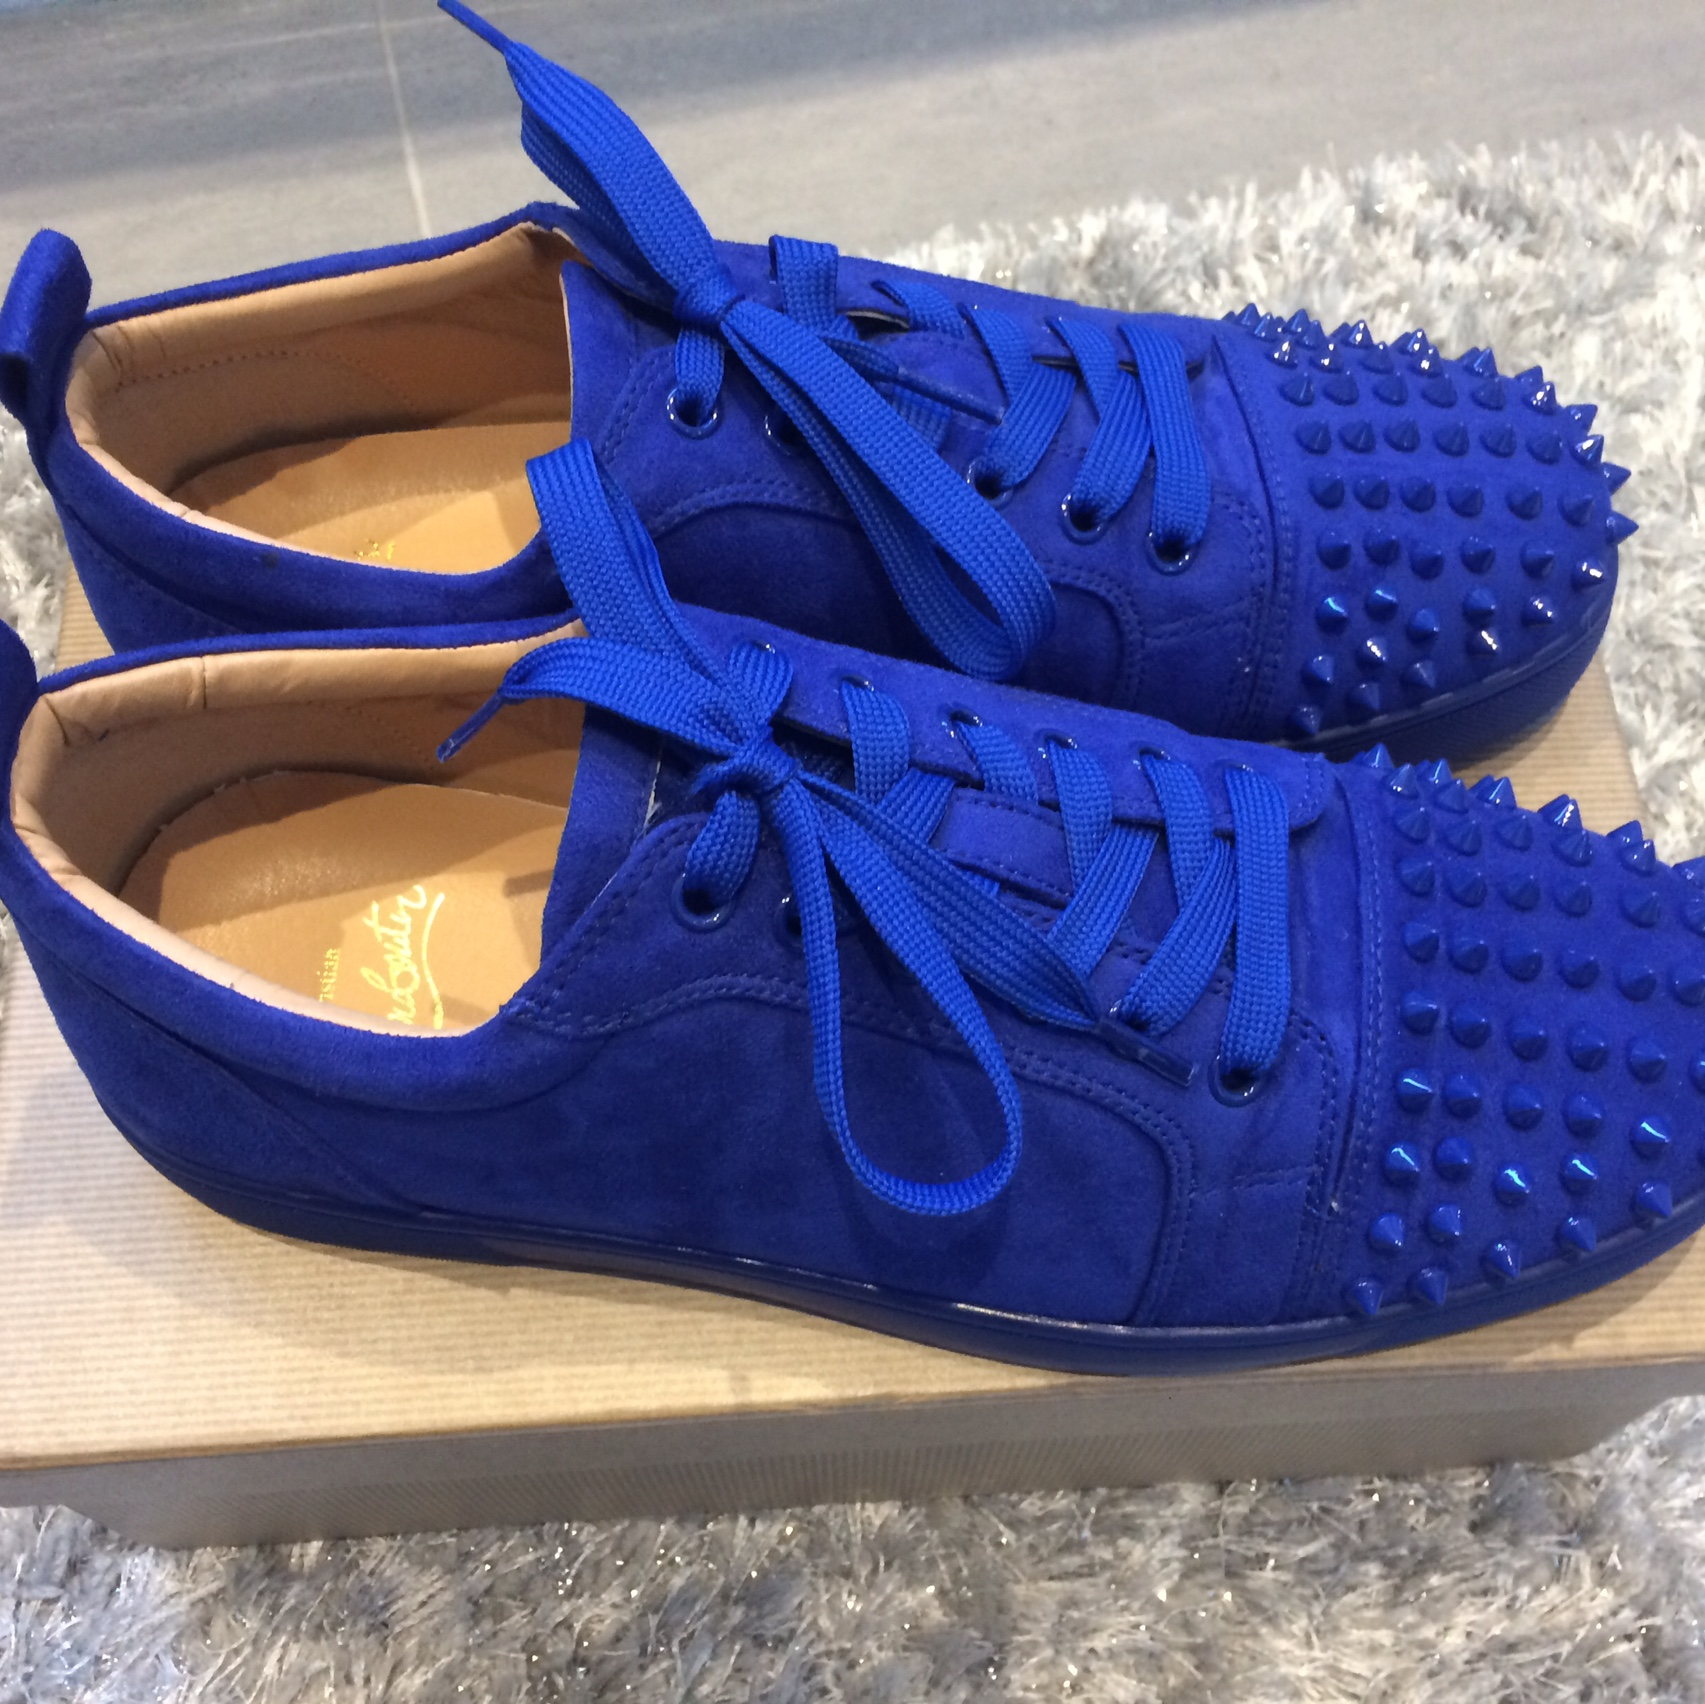 Christian Louboutin Low Top Spikes Blue Bought Depop